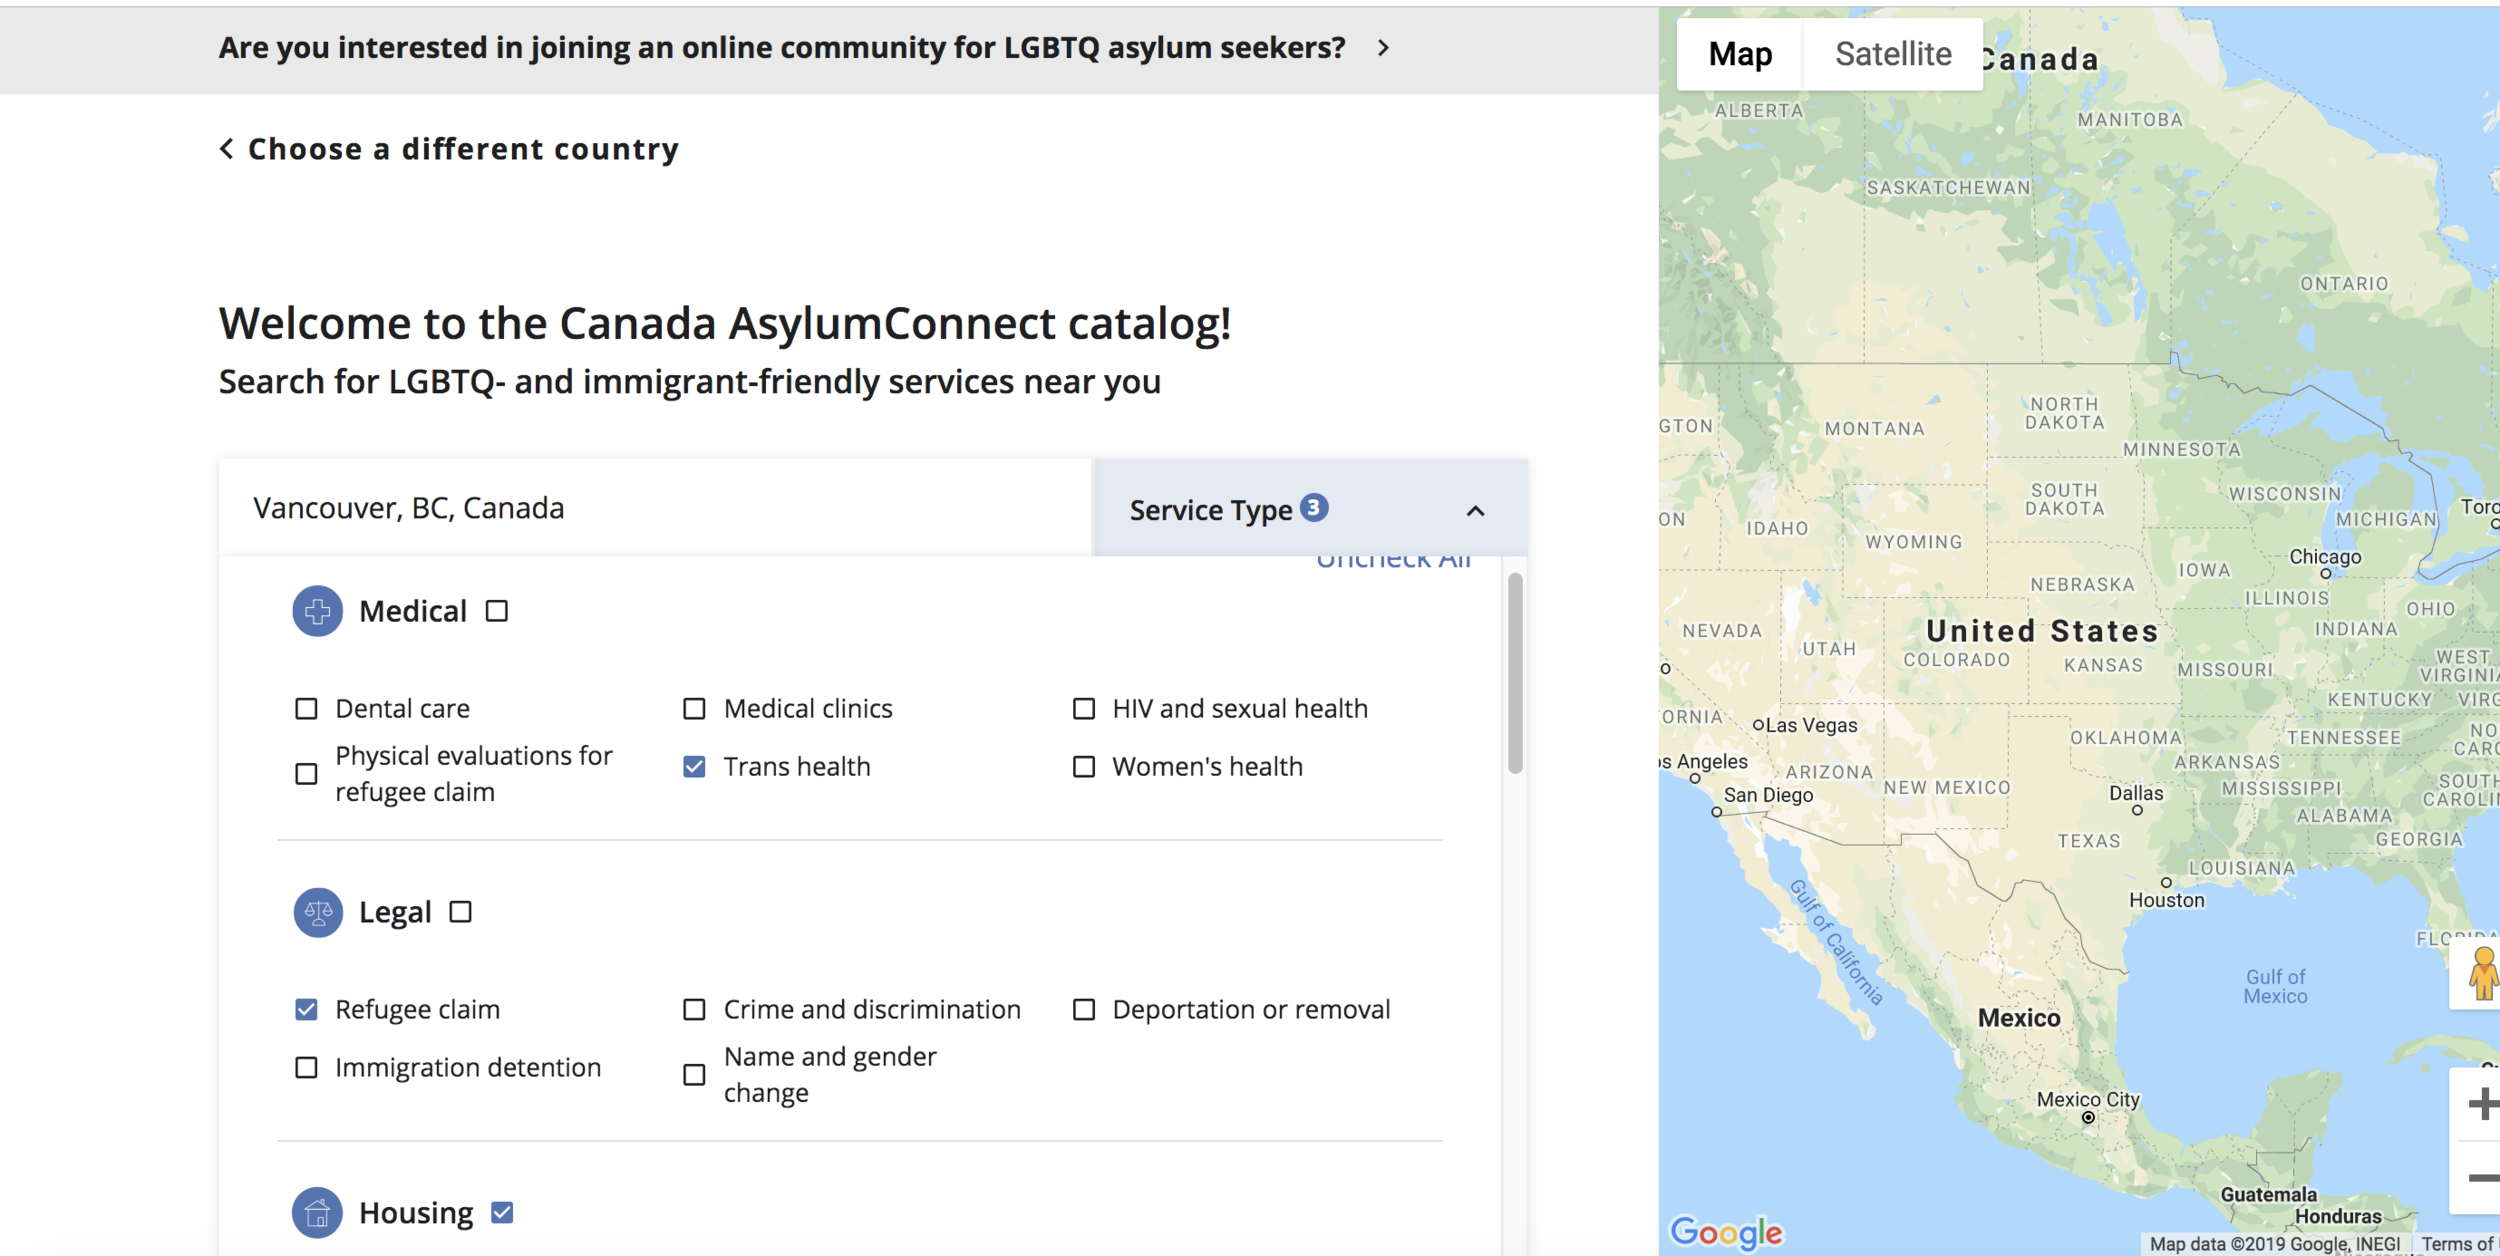 The Canada AsylumConnect catalog currently allows users to search for verified LGBTQ- and immigrant-friendly services across 13 categories and 26 subcategories.